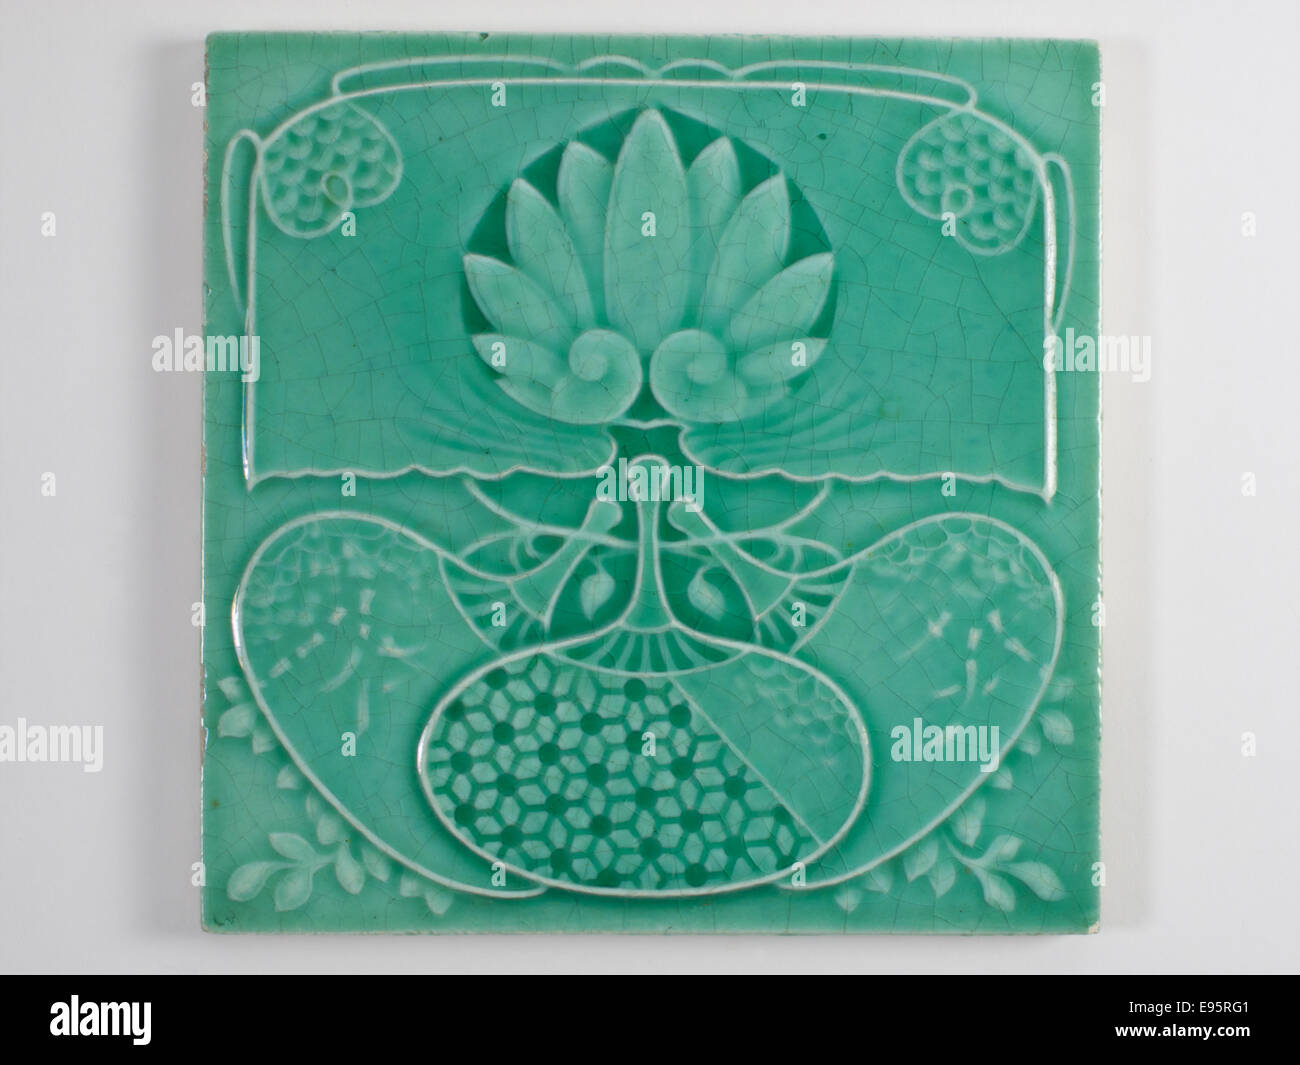 Pilkington Royal Lancastrian Aesthetic Movement tile, decorated with a Japanese inspired design of fans and a large - Stock Image